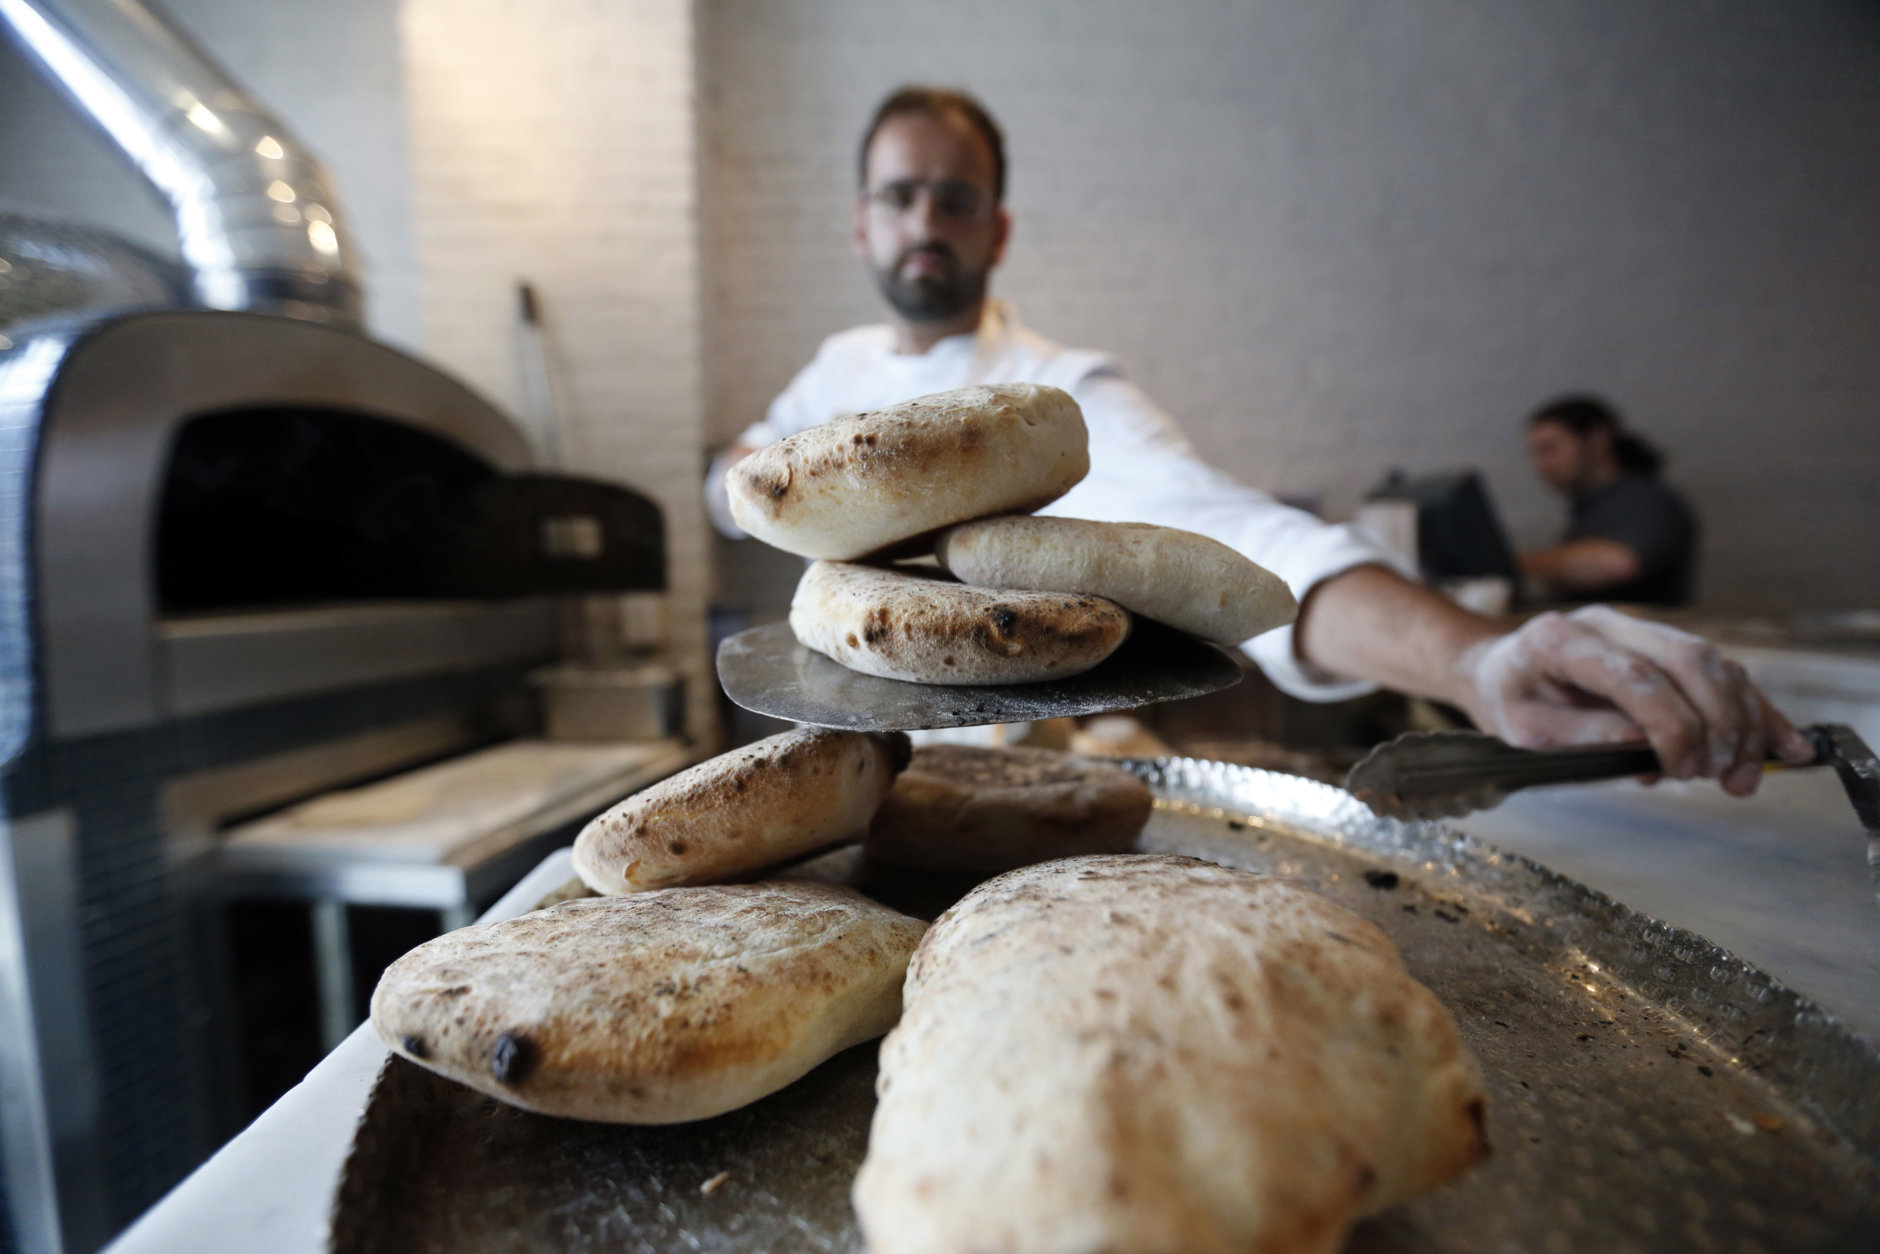 In this Tuesday, May 31, 2016 photo, Chef Alon Shaya, proprietor of Shaya Restaurant, makes house made pita at his wood fired oven at the restaurant in New Orleans. In 2015, Shaya opened his namesake restaurant, a bustling Israeli eatery on chic Magazine Street that the James Beard Foundation in May named the Best New Restaurant in the U.S. (AP Photo/Gerald Herbert)